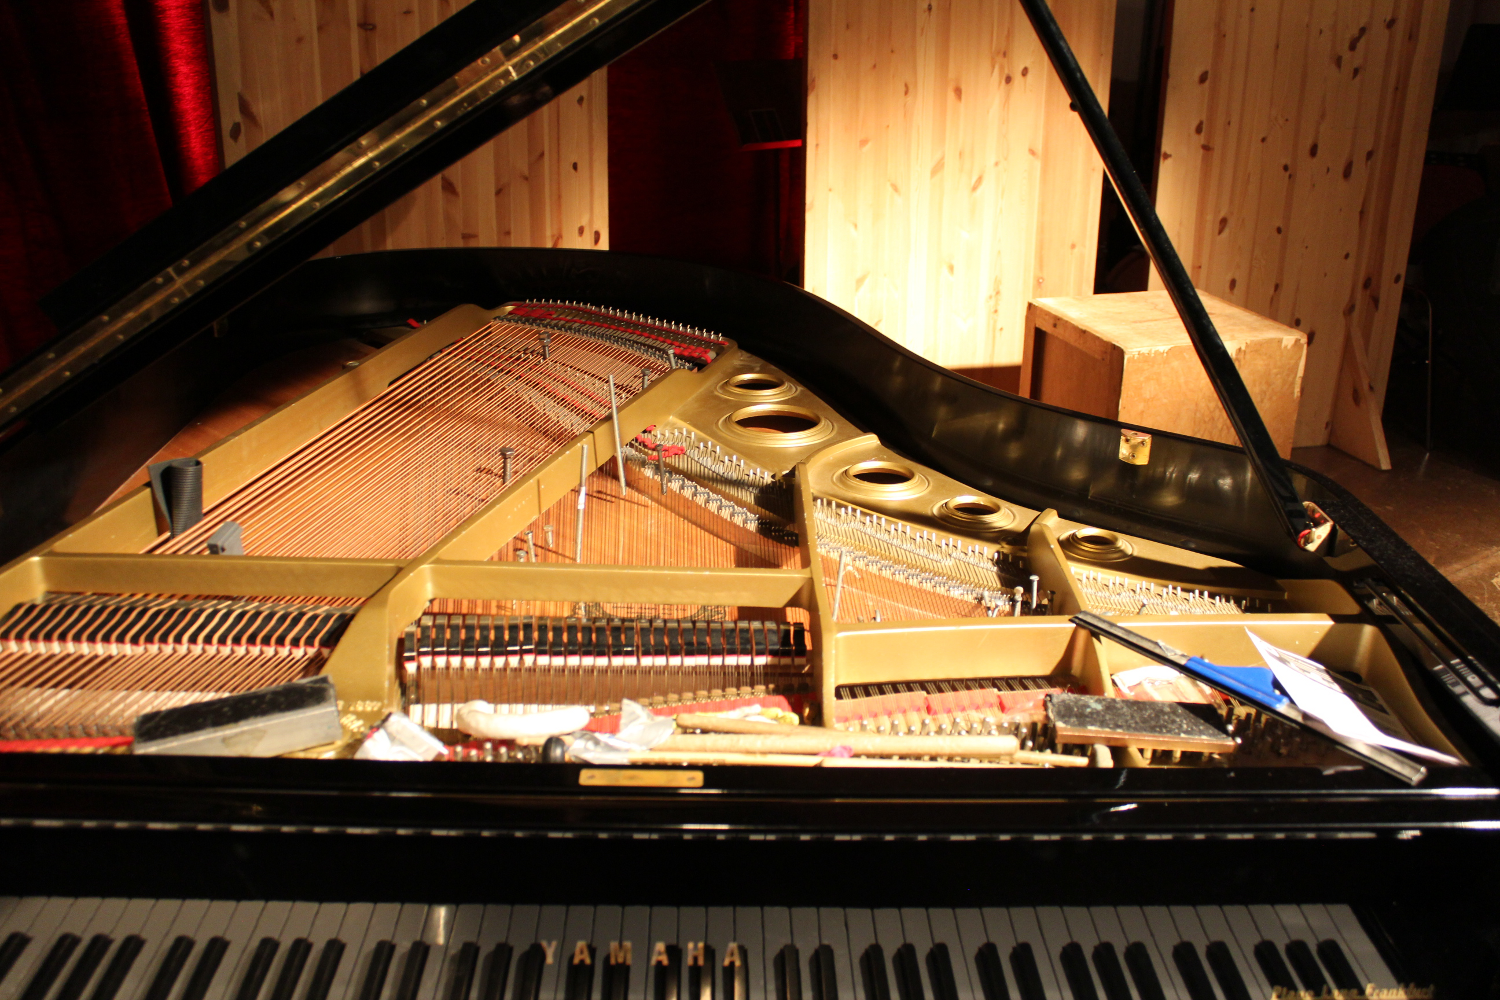 Prepared piano of Phillip Zoubek by Freimut Bahlo. *